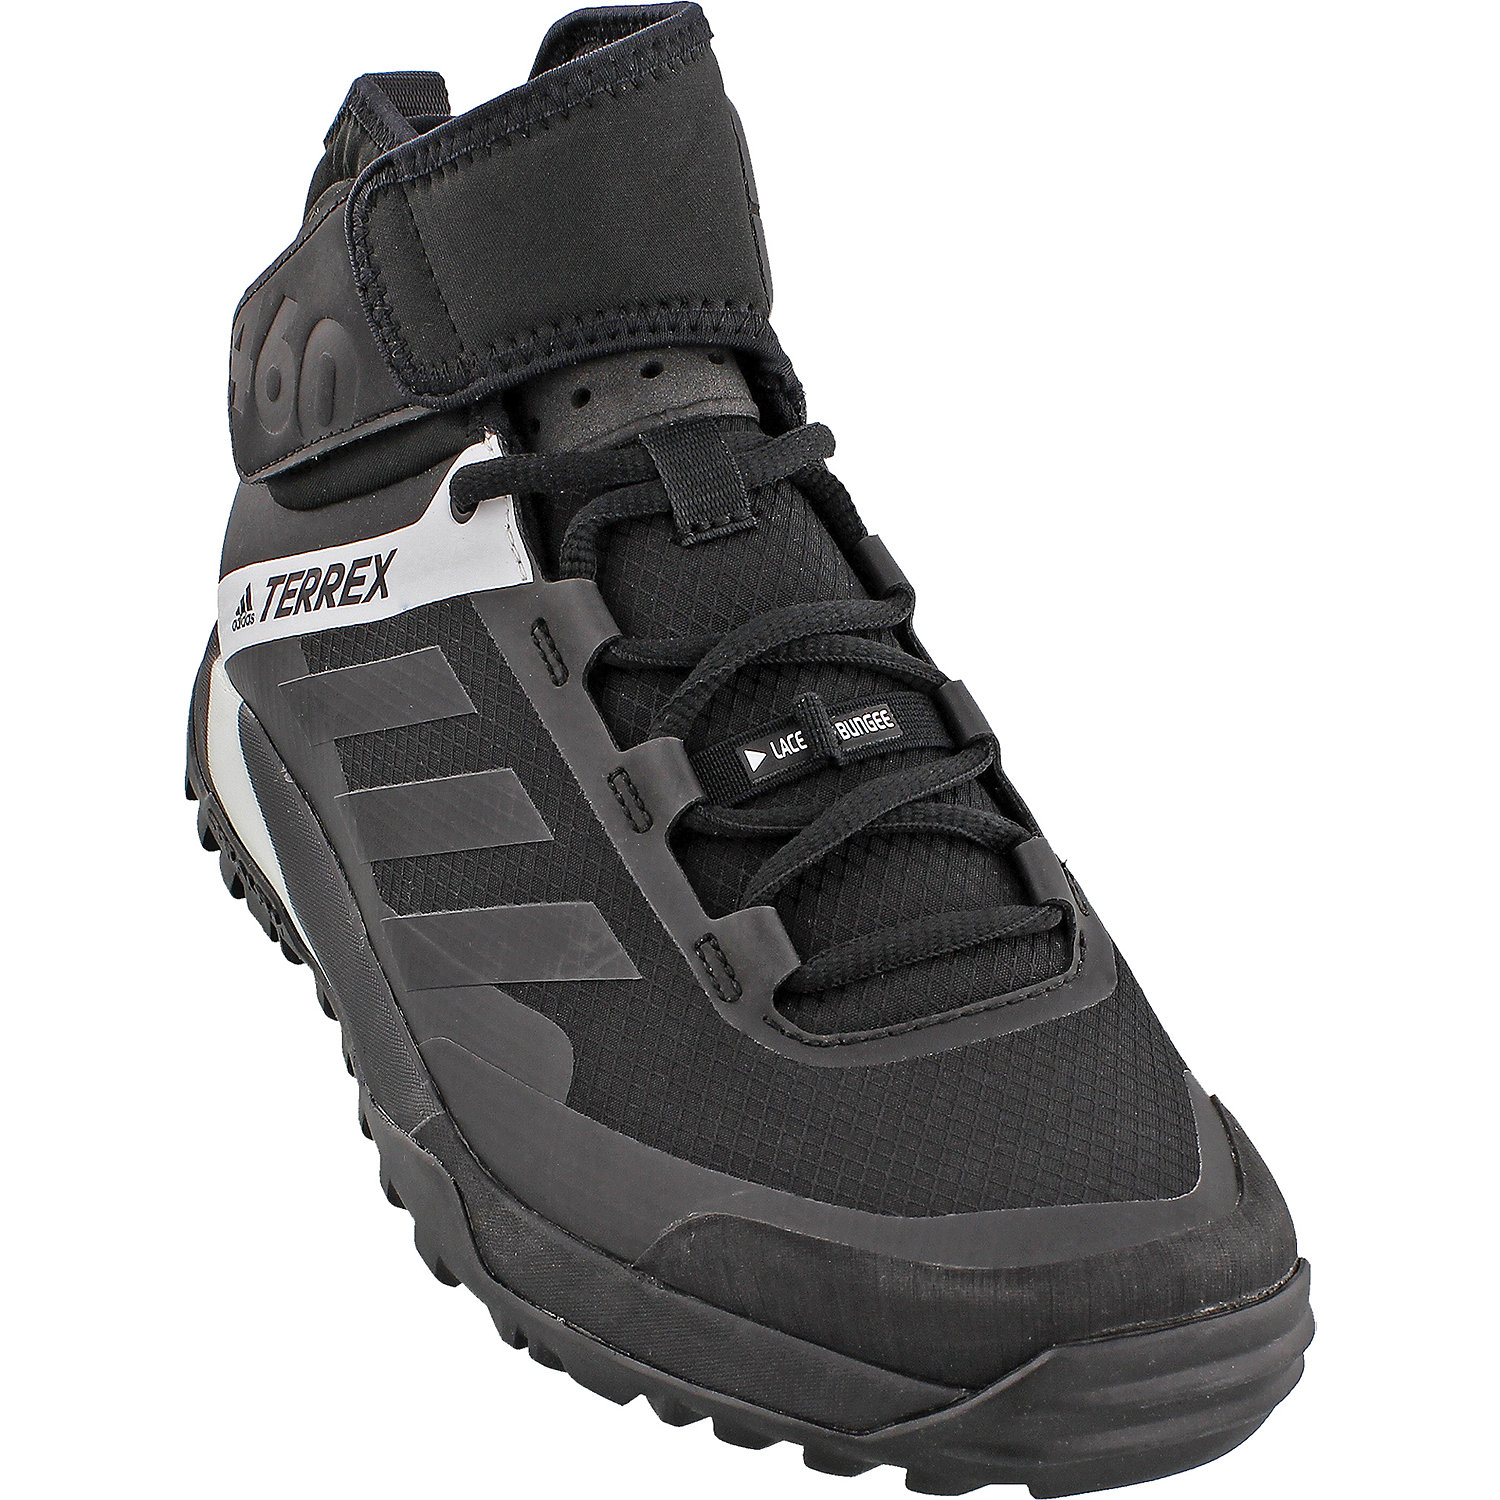 4bc978489d7c Adidas Men s Terrex Trail Cross Protect Shoe - Moosejaw